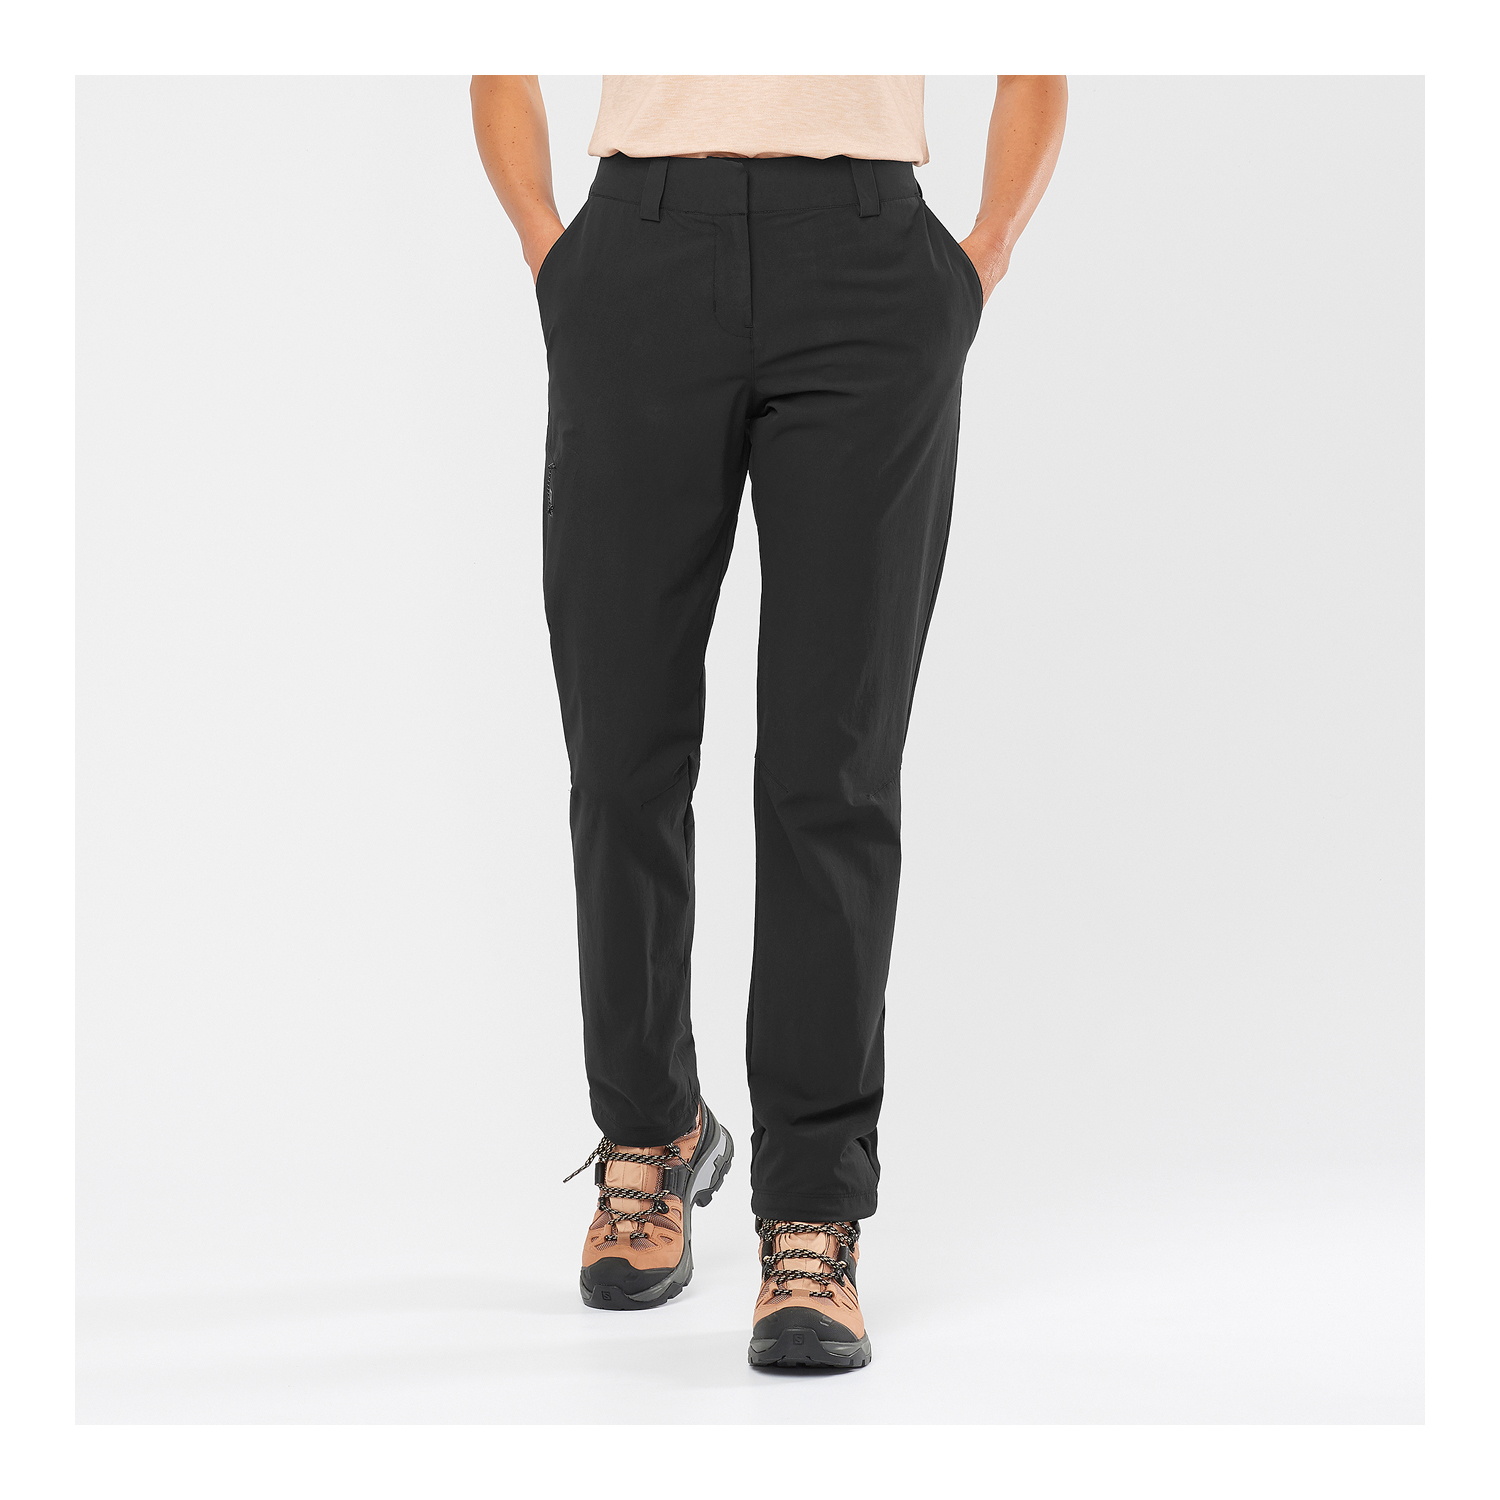 OUTLINE PANT W